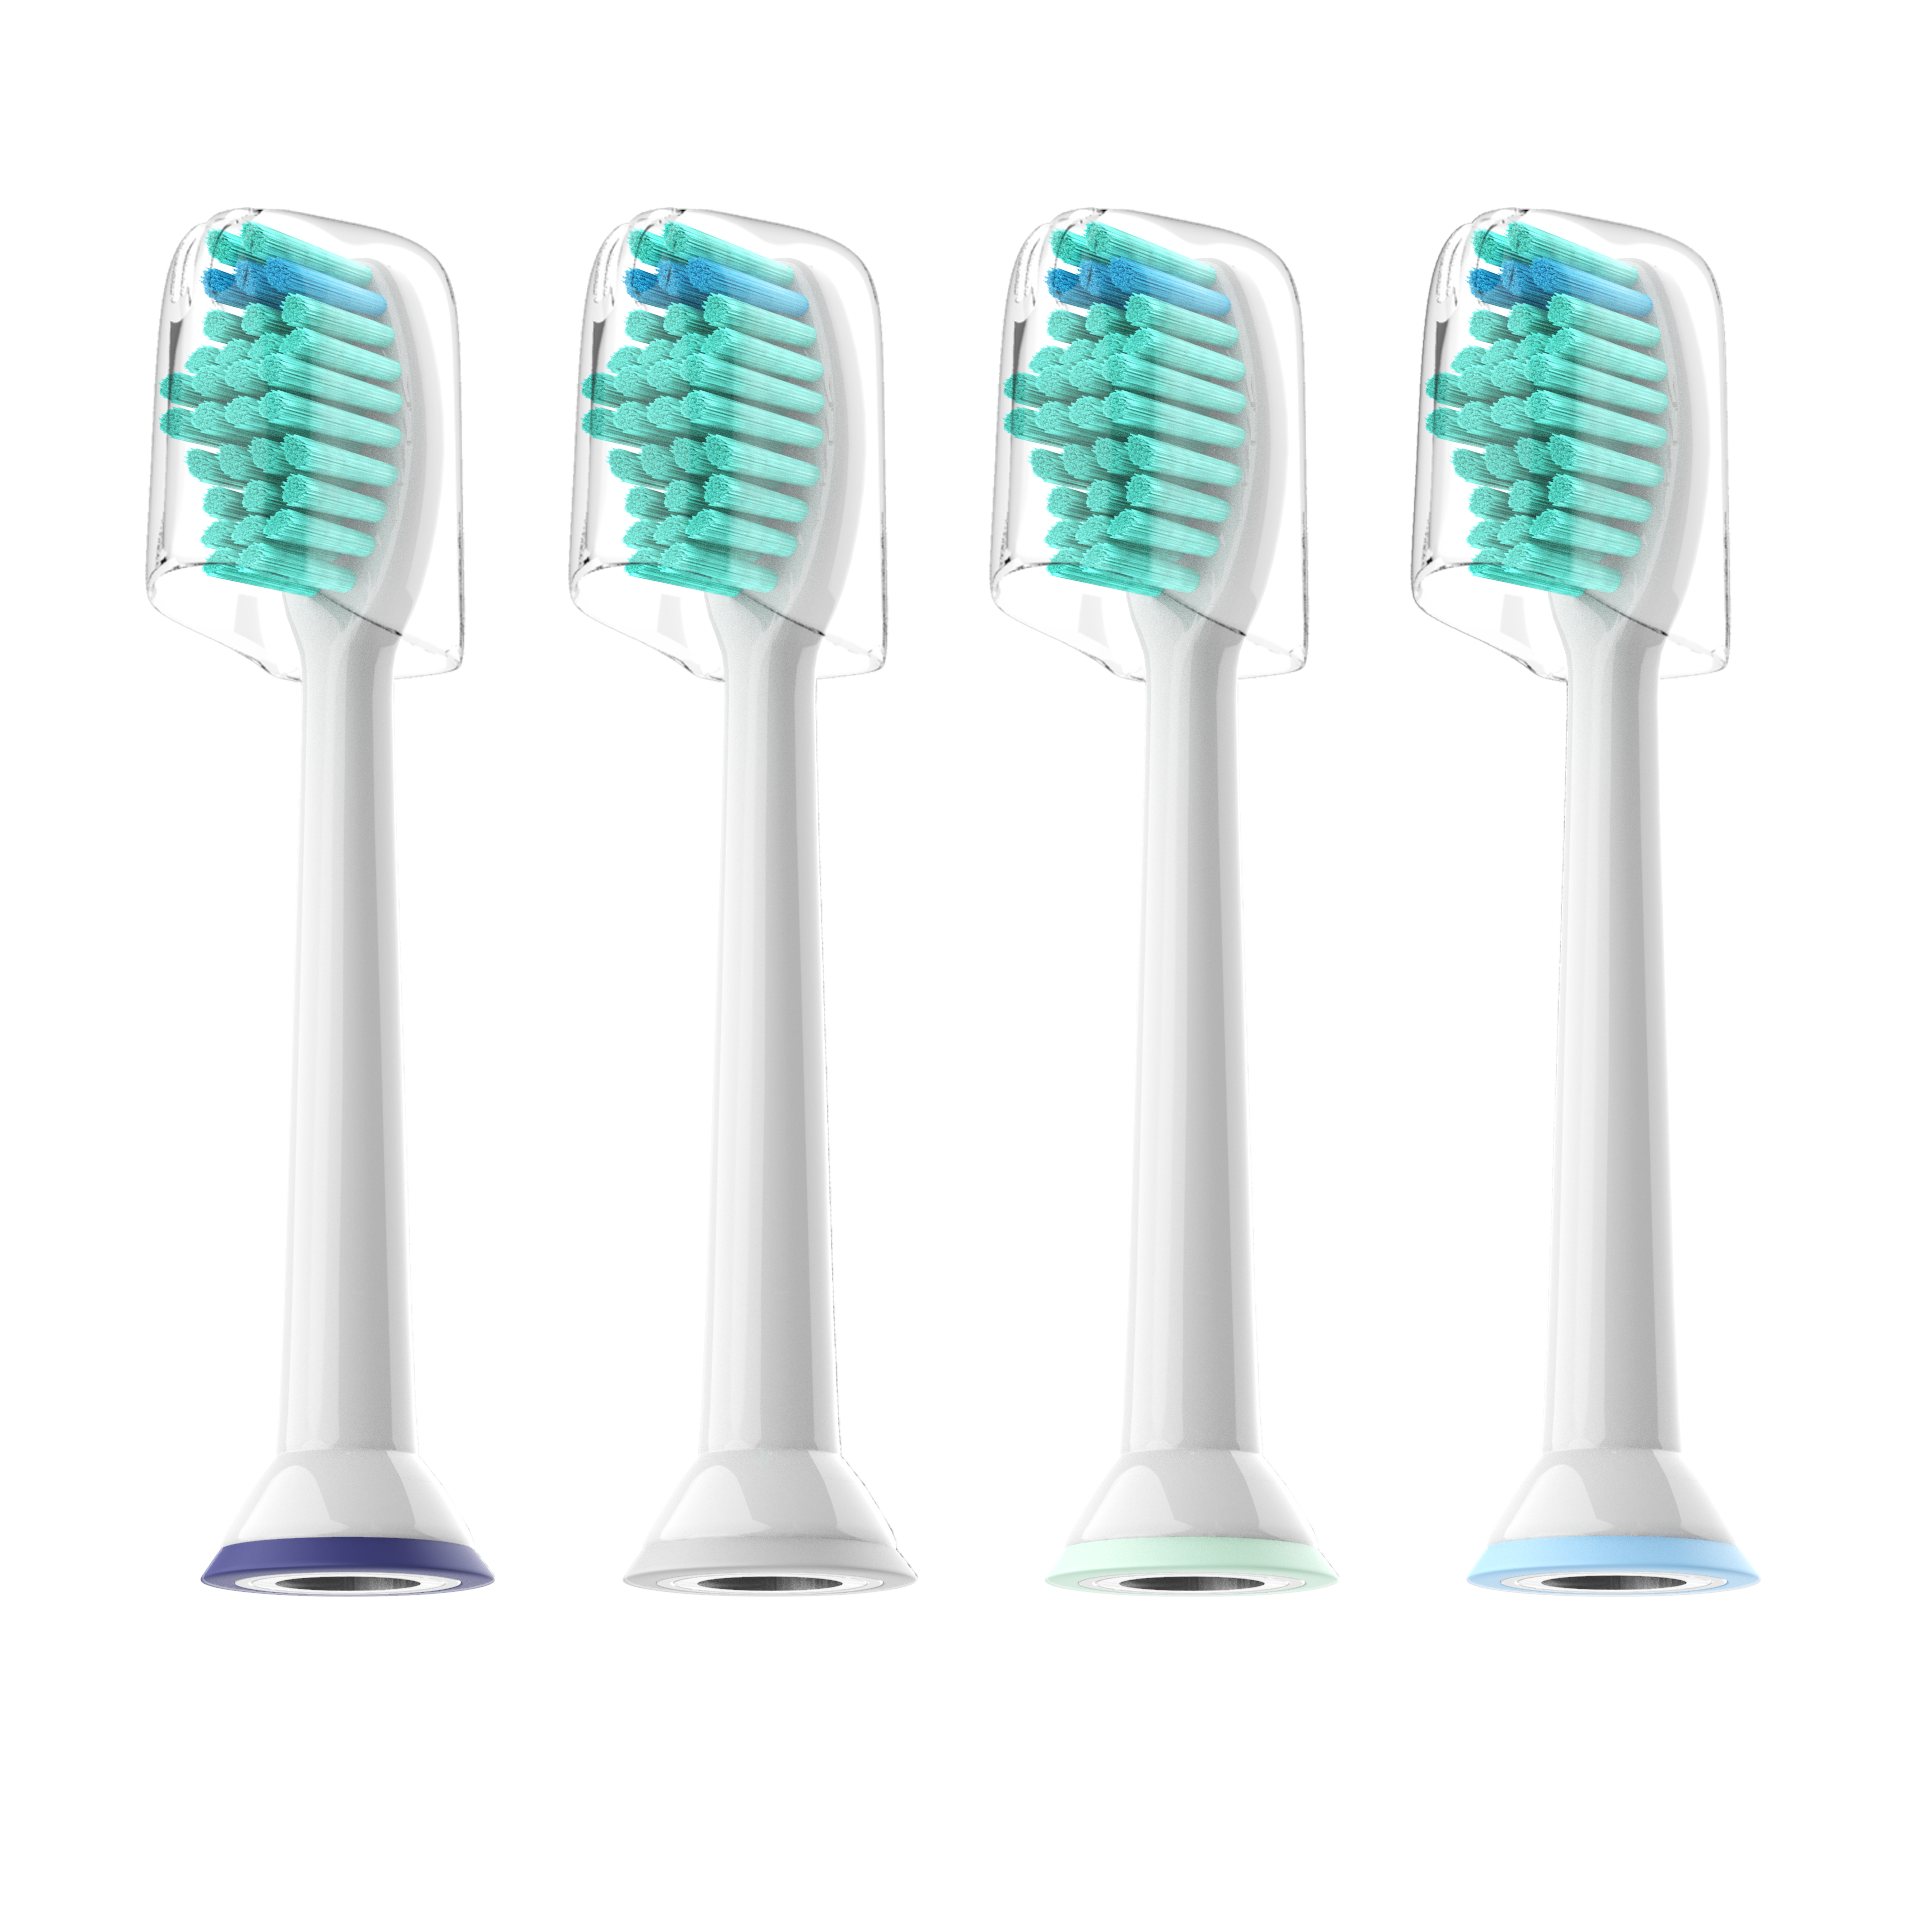 4pcs/lot Replacement Toothbrush Heads With Cap For Philips Sonicare HX6530 HX9340 HX6930 HX6710 HX9140 HX6921 HX6930 HX6932